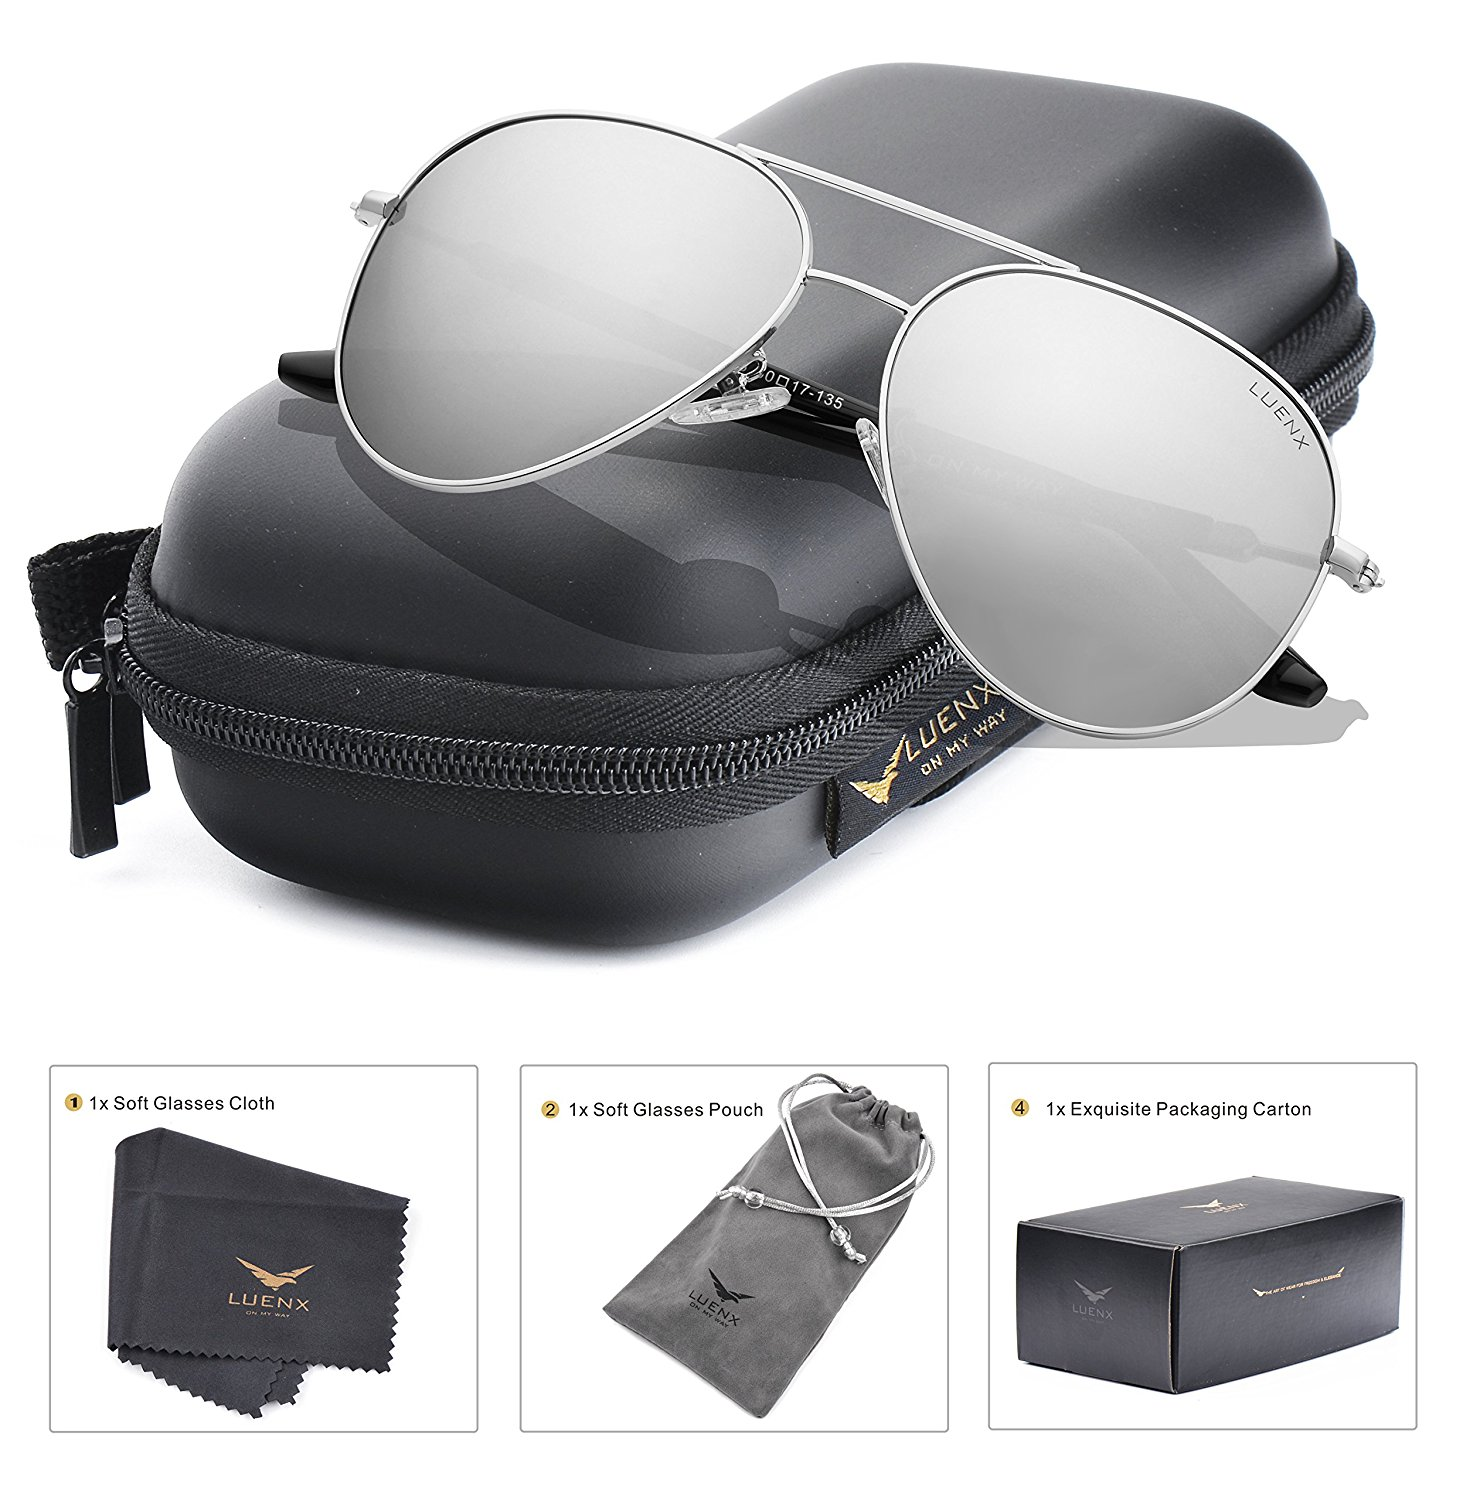 fc3958b841d LUENX Aviator Sunglasses Mens Womens Polarized Mirror - UV 400 Protection  60mm